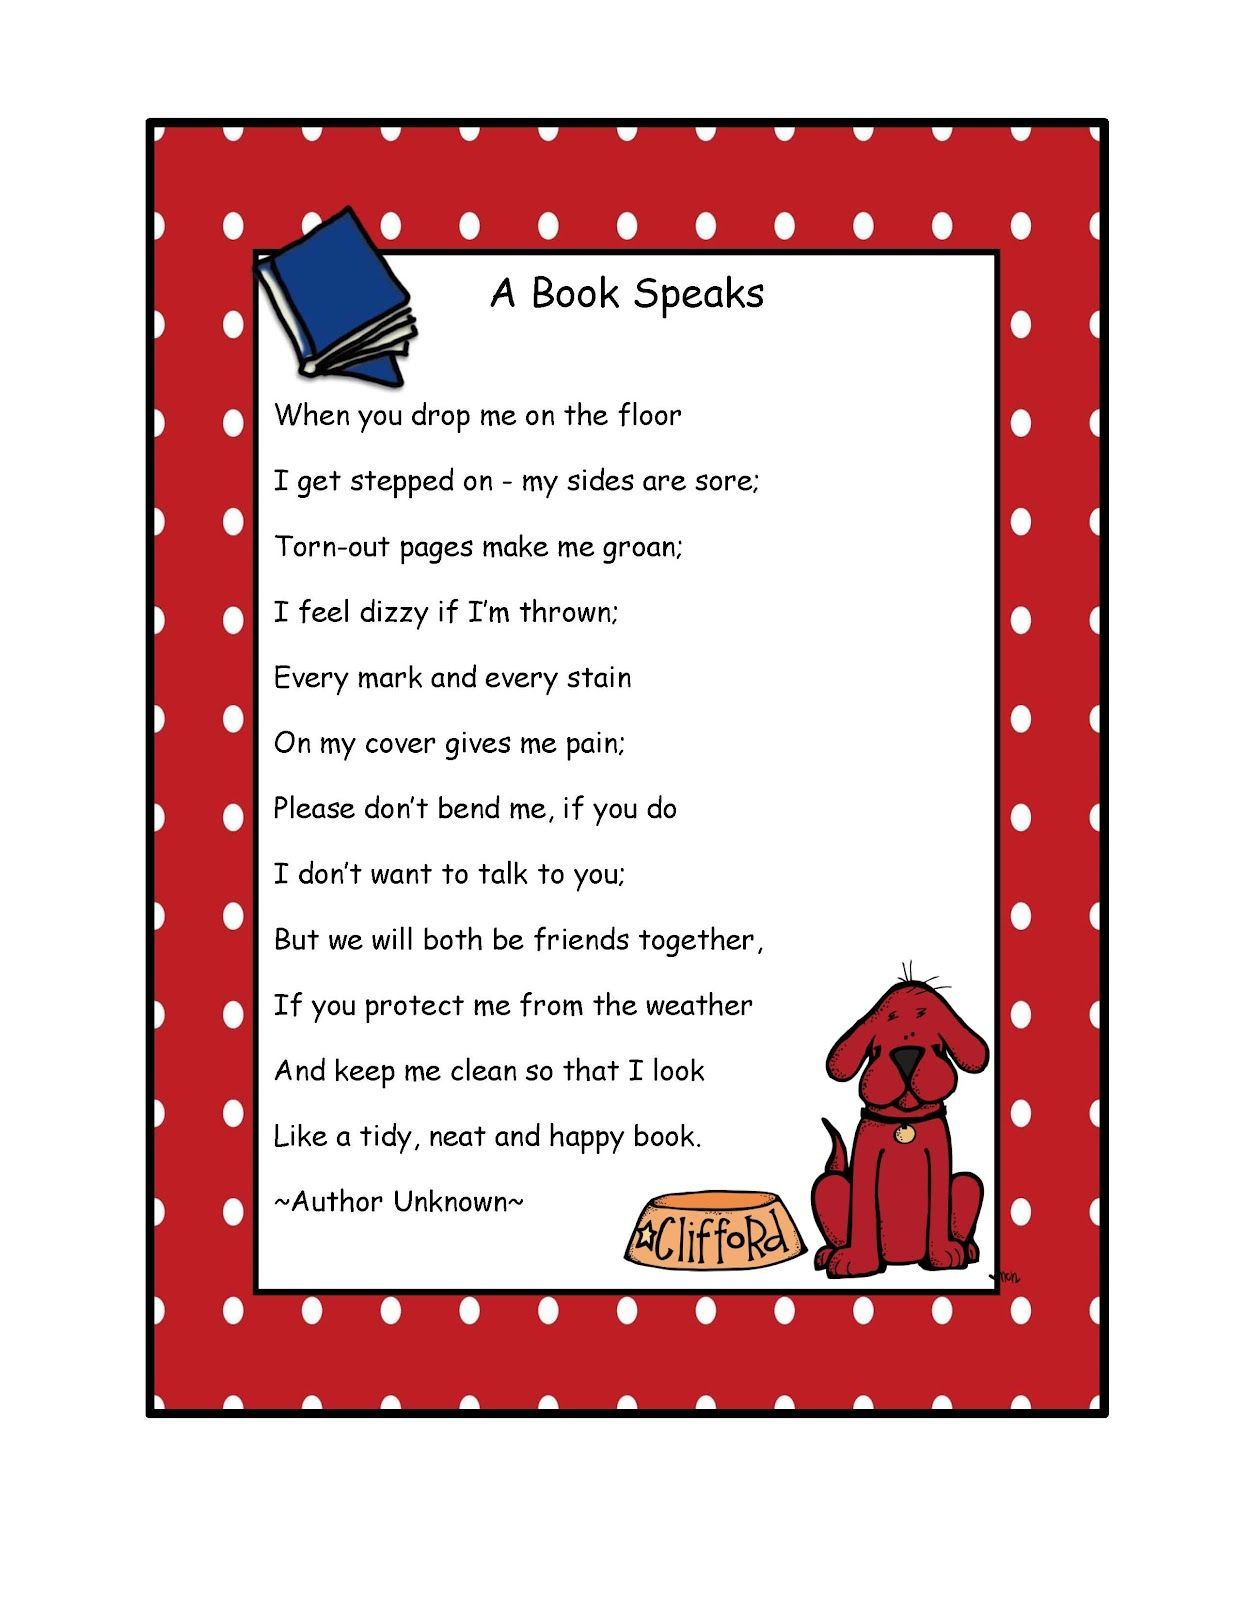 Preschool Printables Free Clifford A Book Speaks Poem